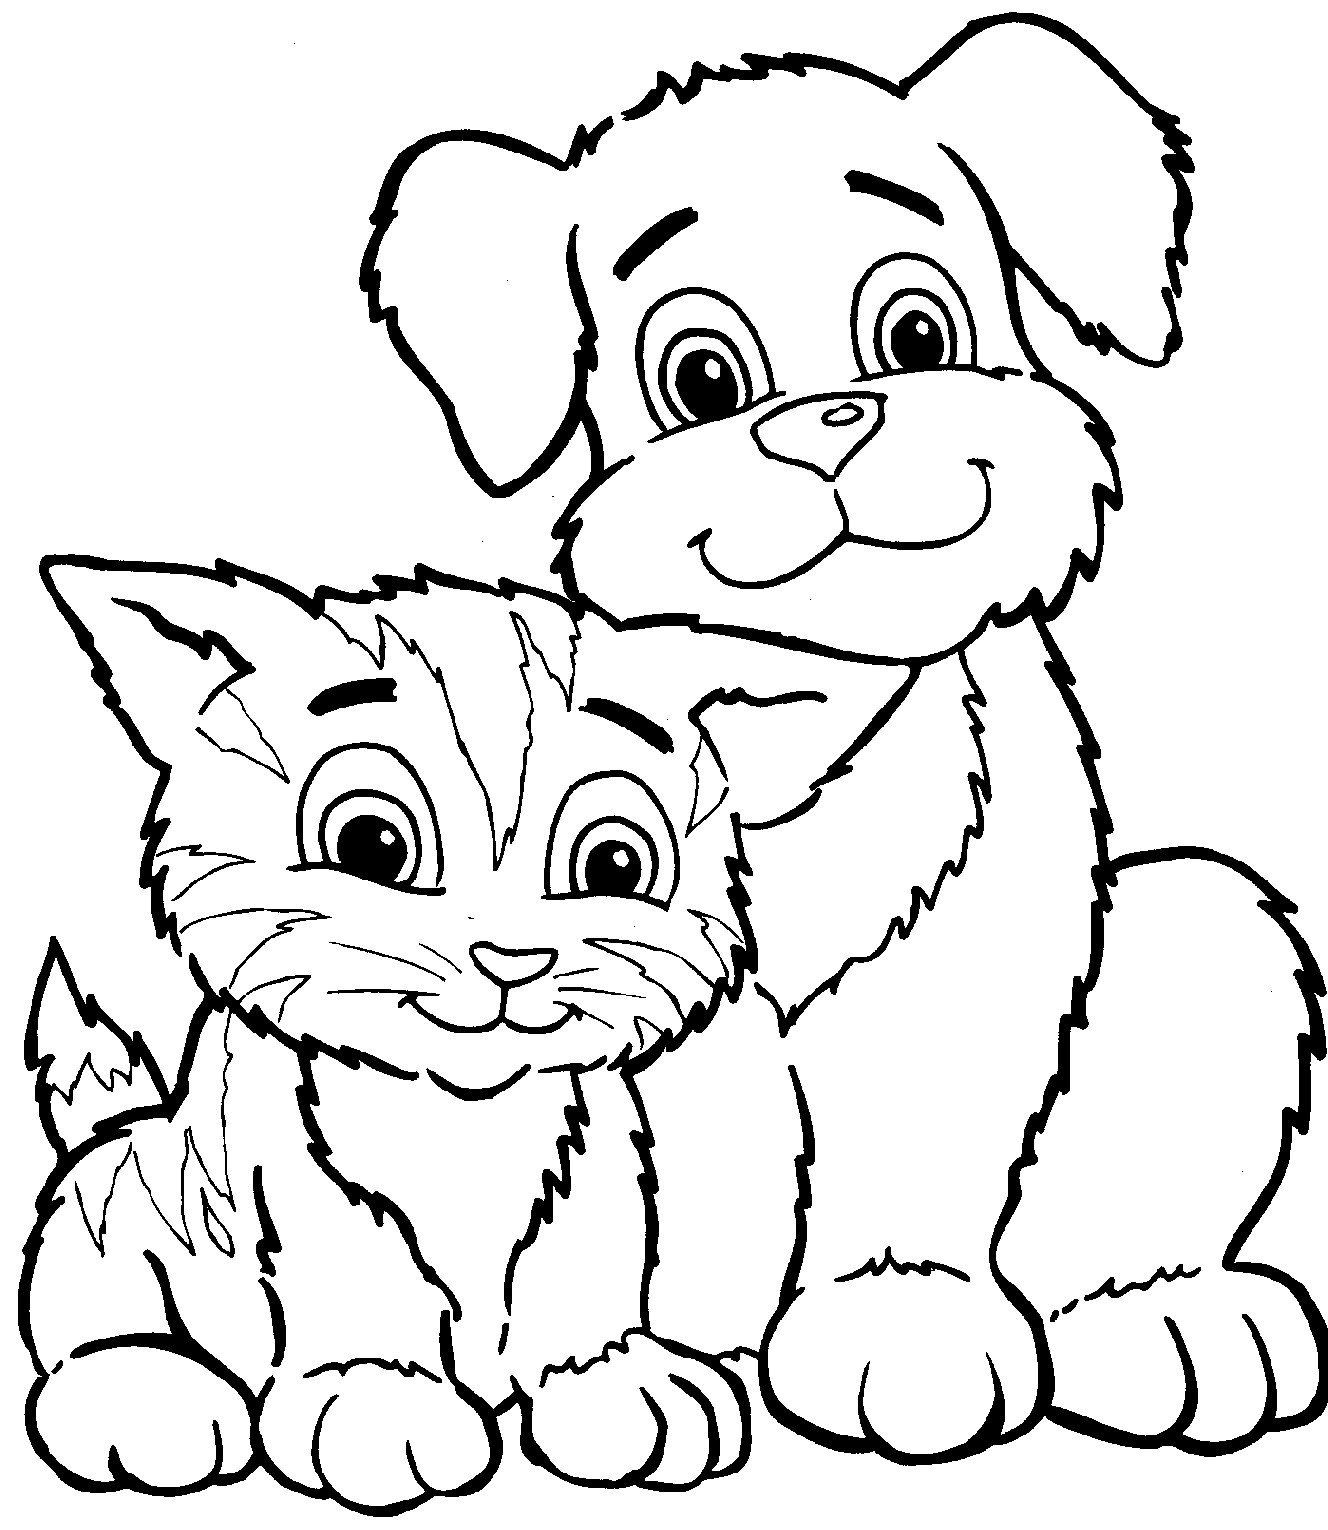 Cat And Dog Coloring Pages Awesome Coloring Book 41 Extraordinary Dog Colouring In Puppy Dog Dog Coloring Page Puppy Coloring Pages Cat Coloring Page